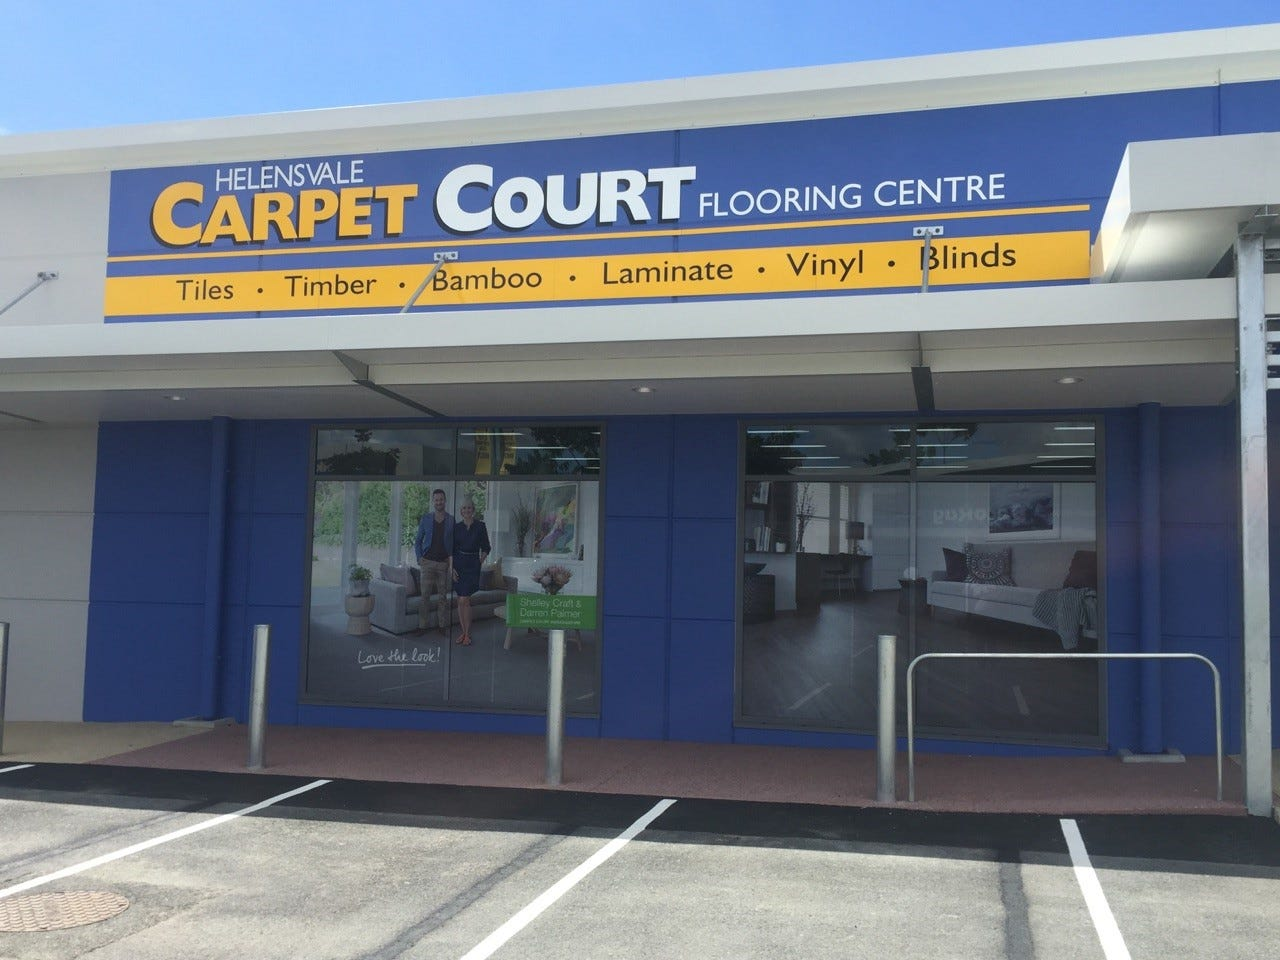 Images of helensvale carpet court